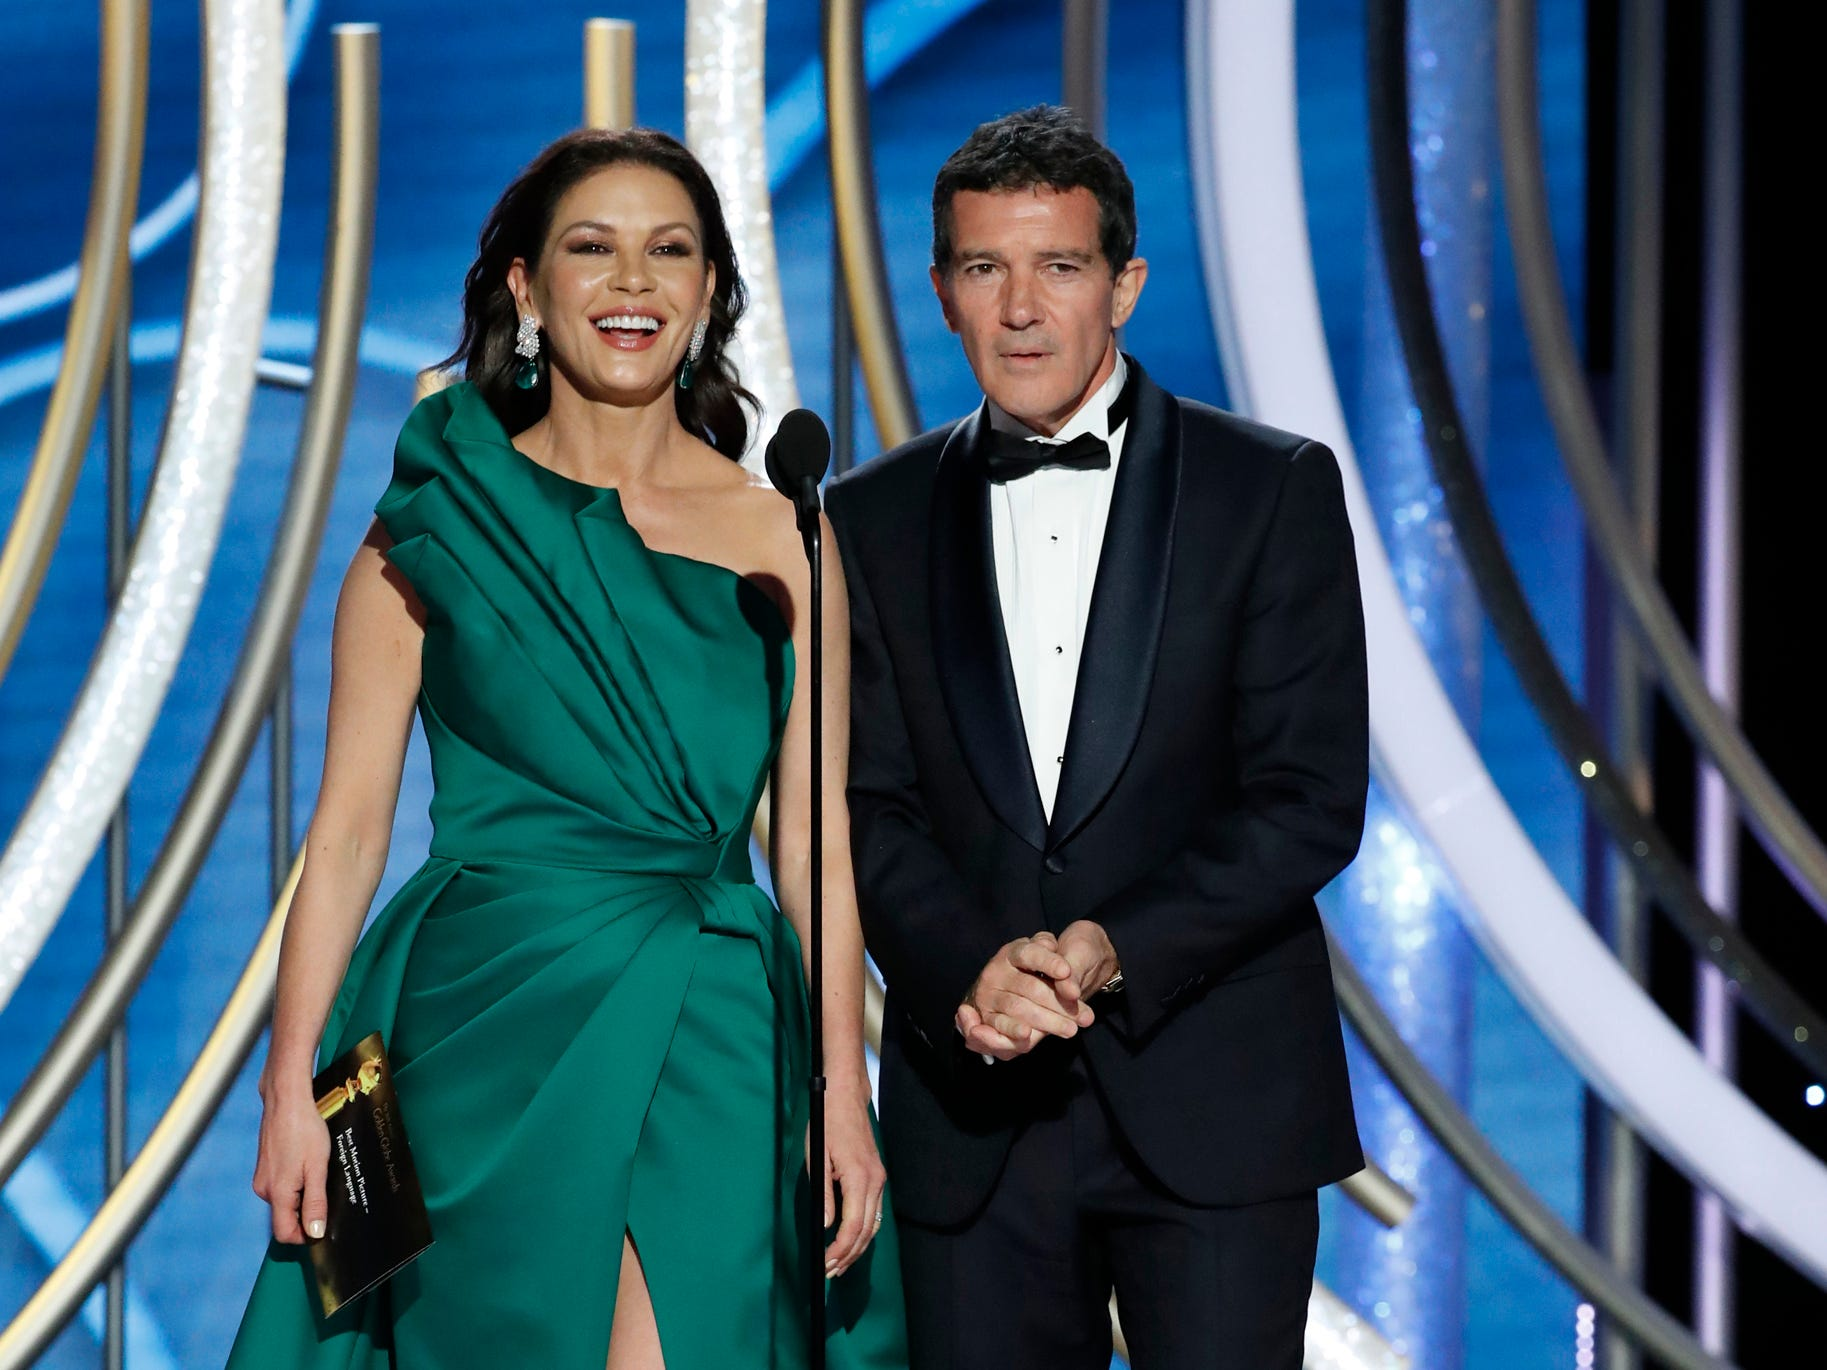 Catherine Zeta-Jones and Antonio Banderas present during the 76th Golden Globe Awards.